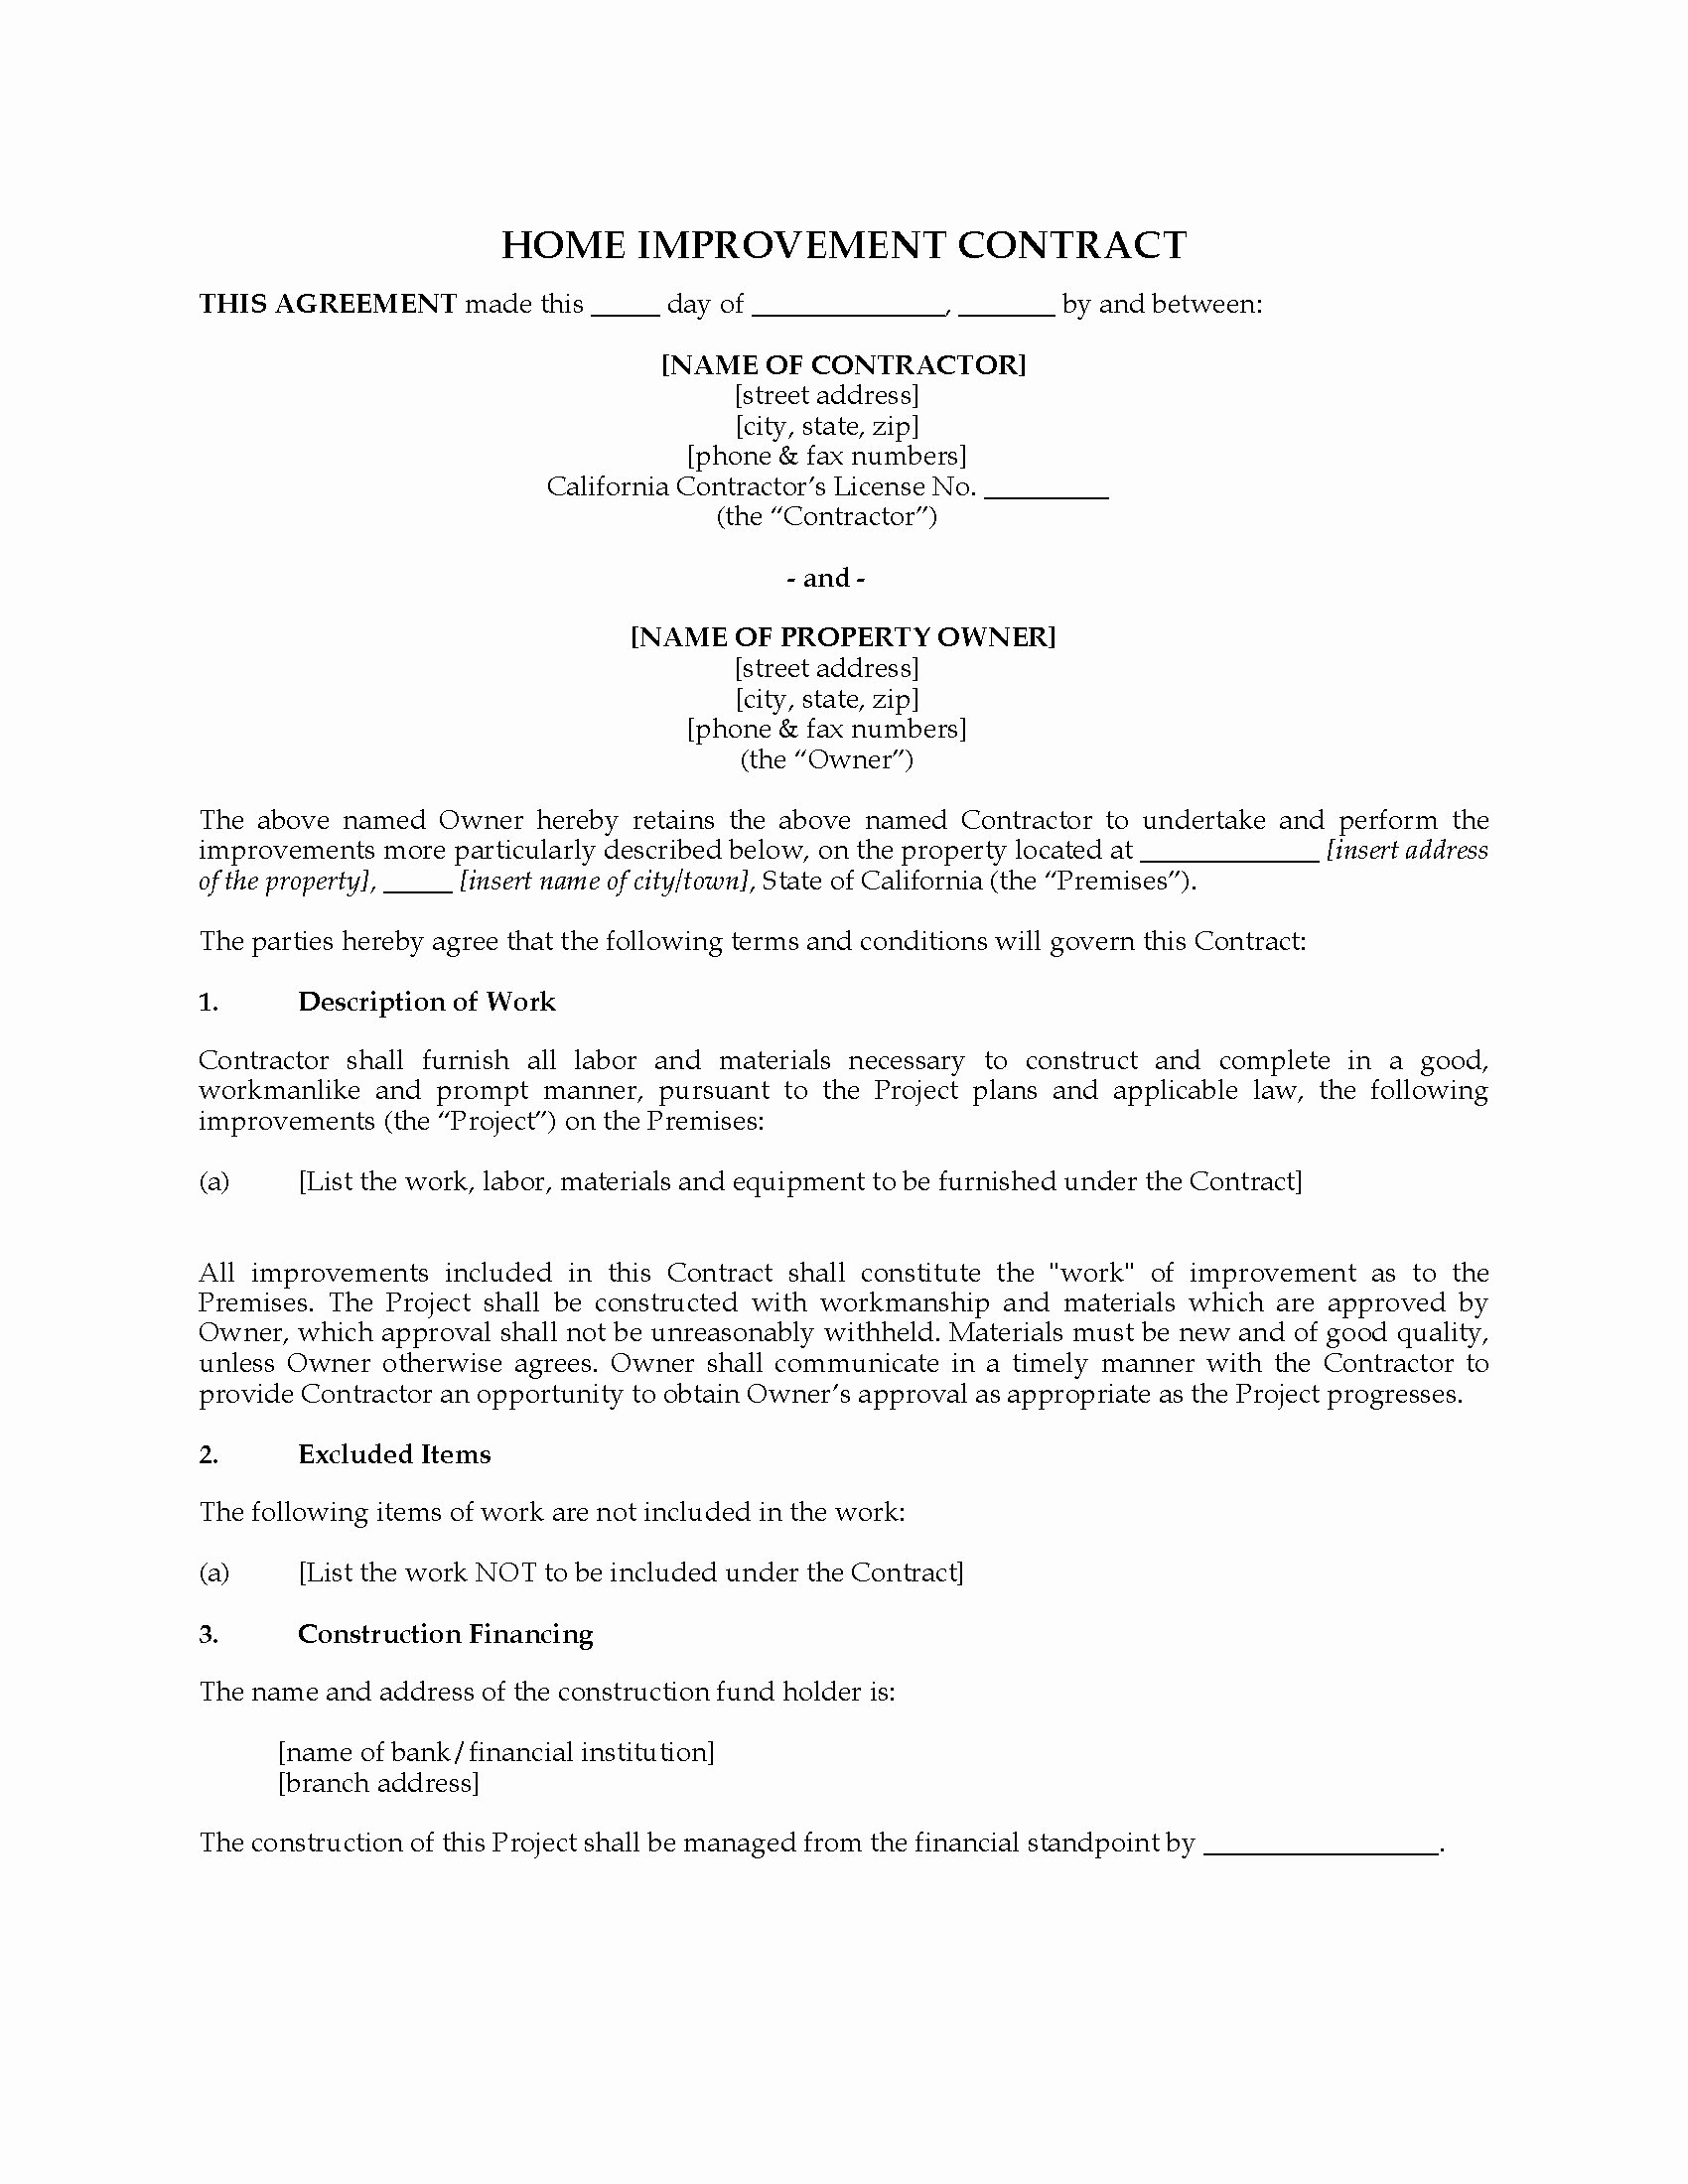 Home Remodeling Contract Template New California Home Improvement Contract